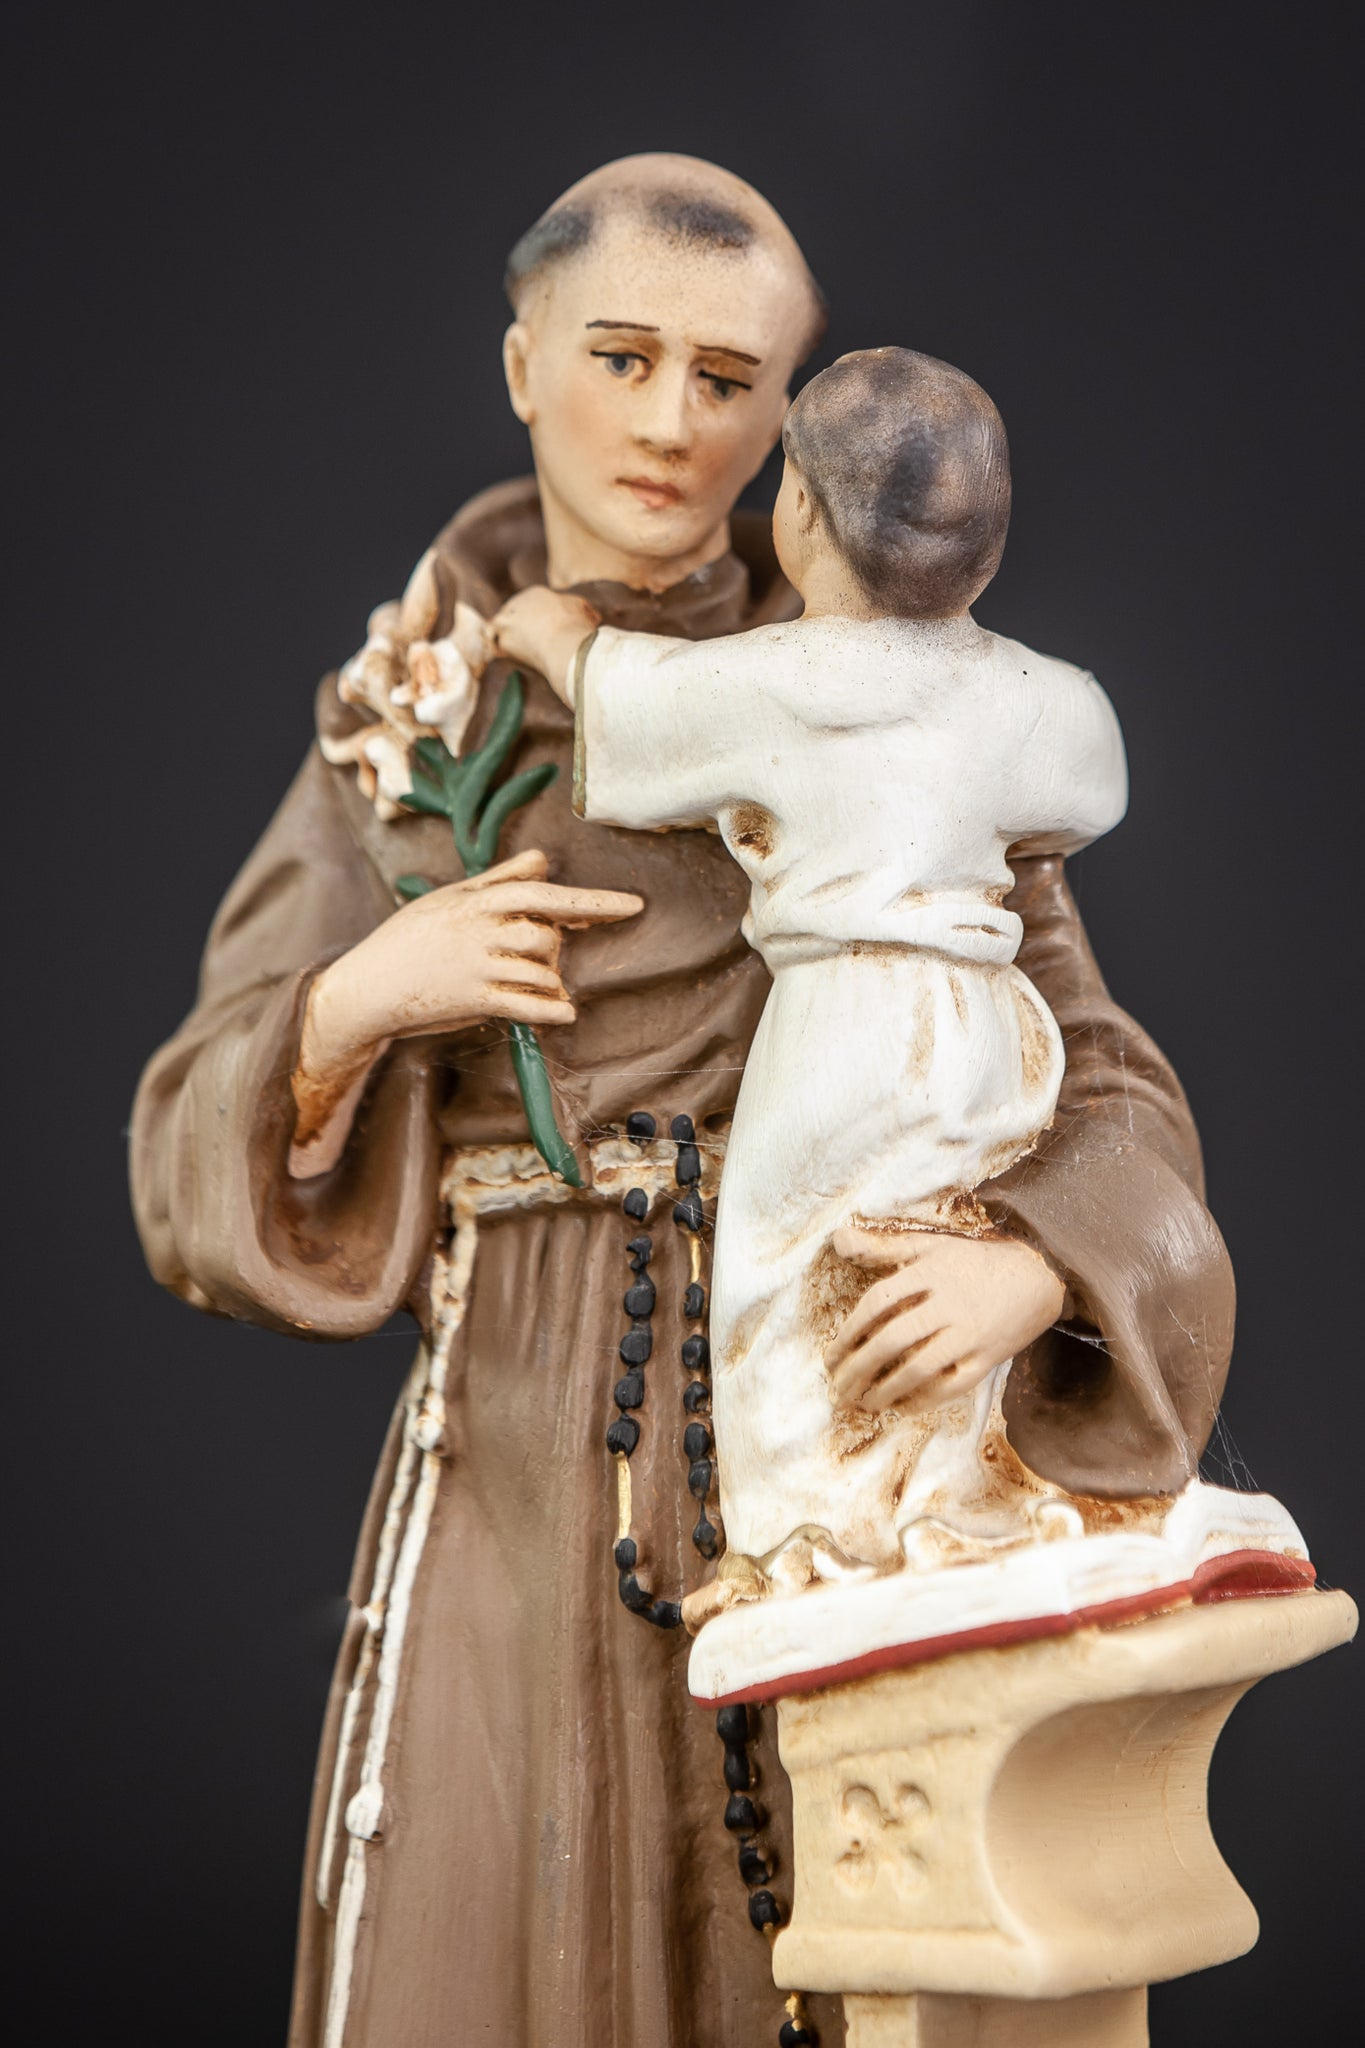 St Anthony Child Jesus Christ Plaster Statue 15.4""